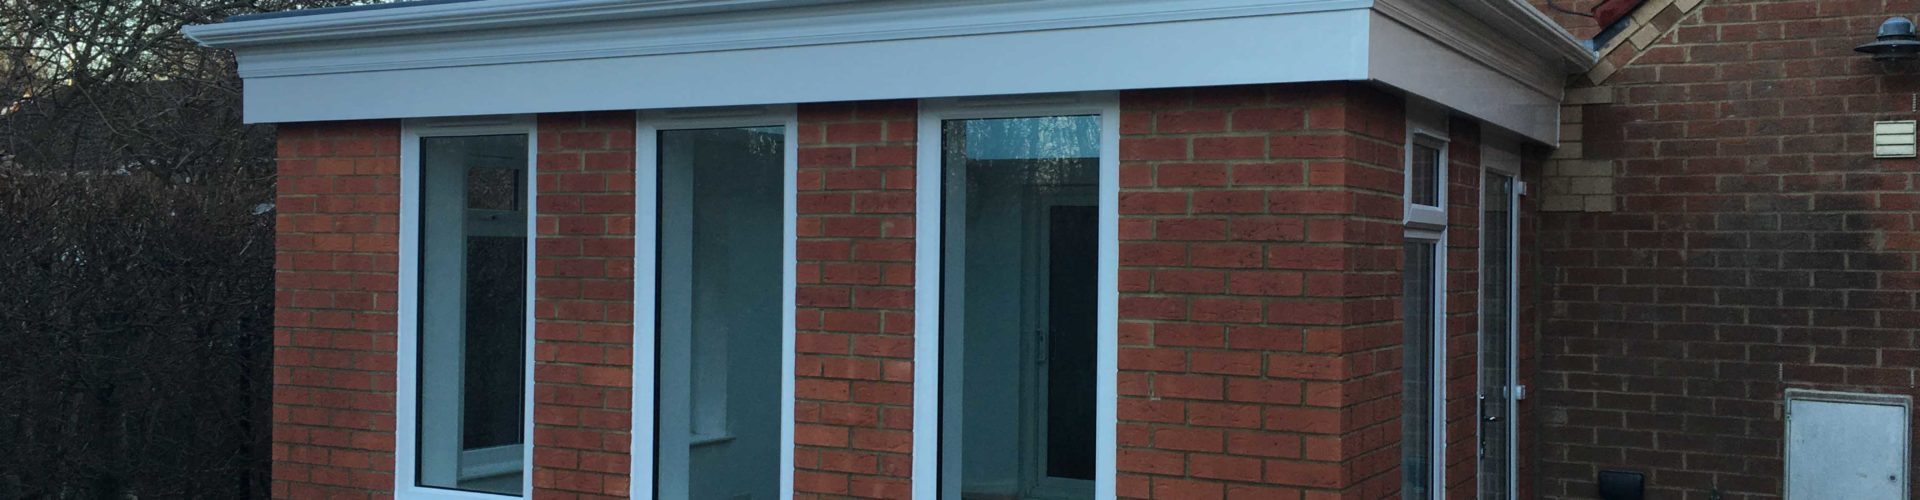 uPVC Window Prices Biggleswade